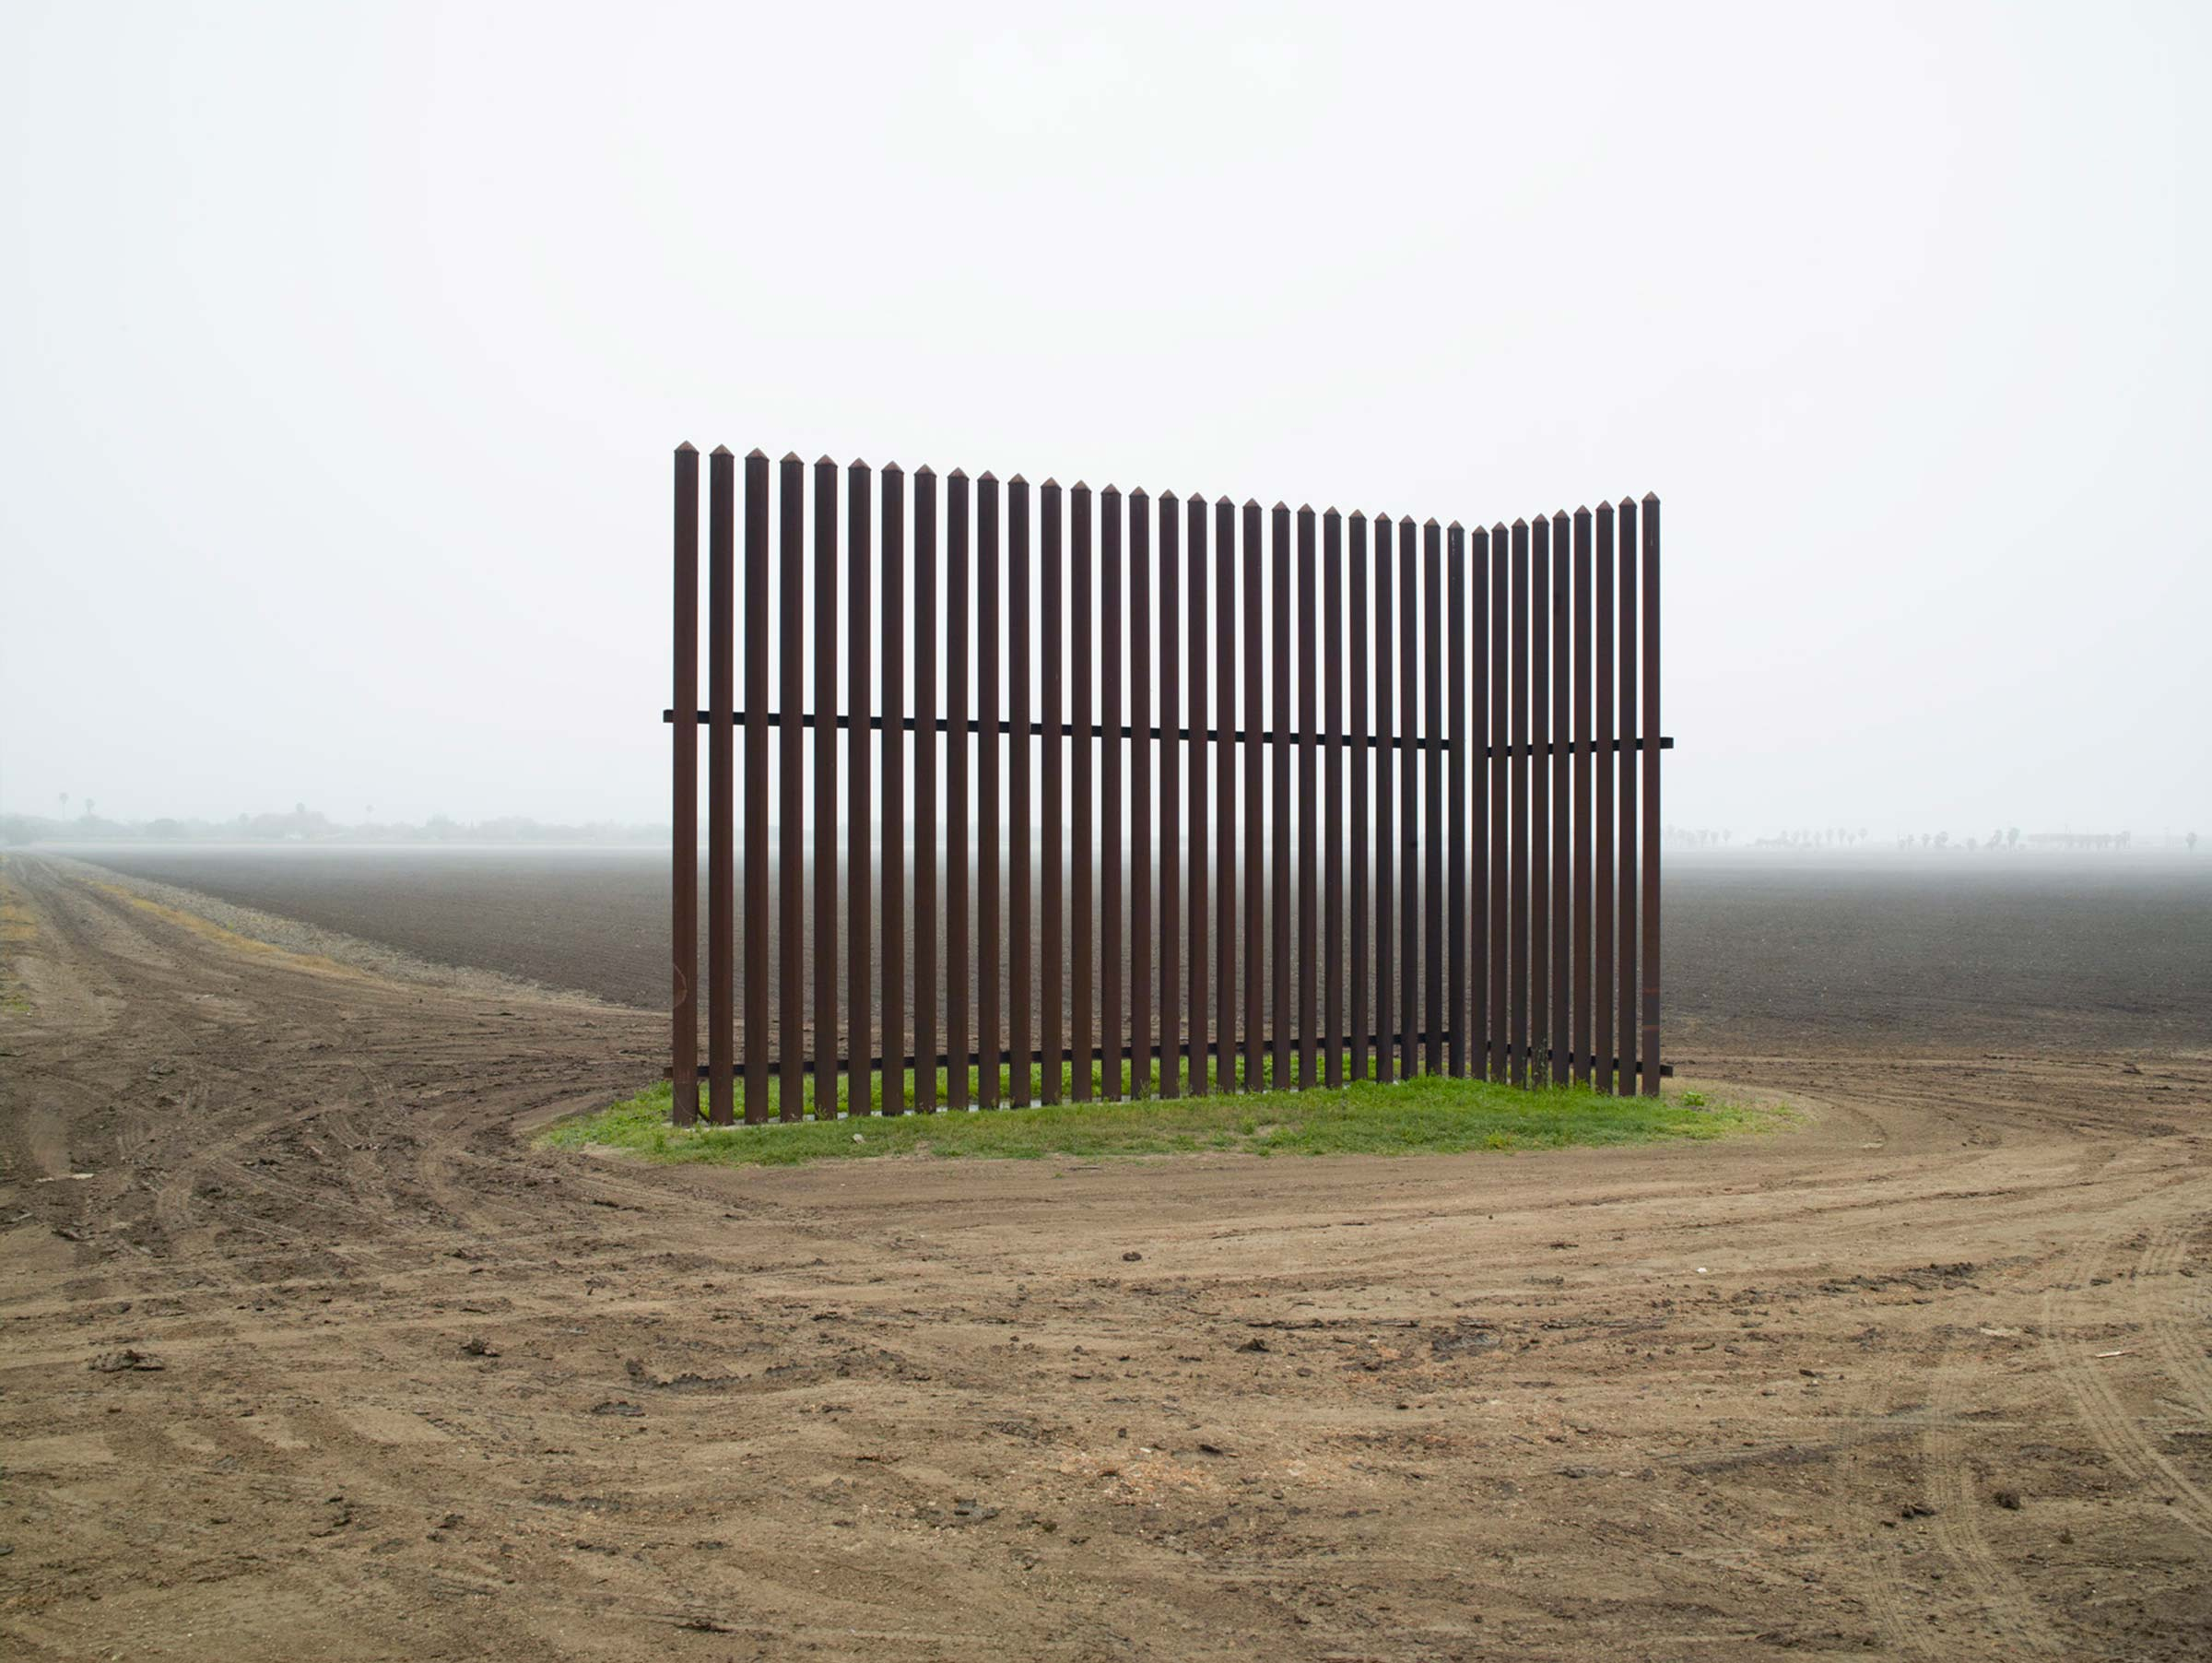 Wall near Texas border by Richard Misrach